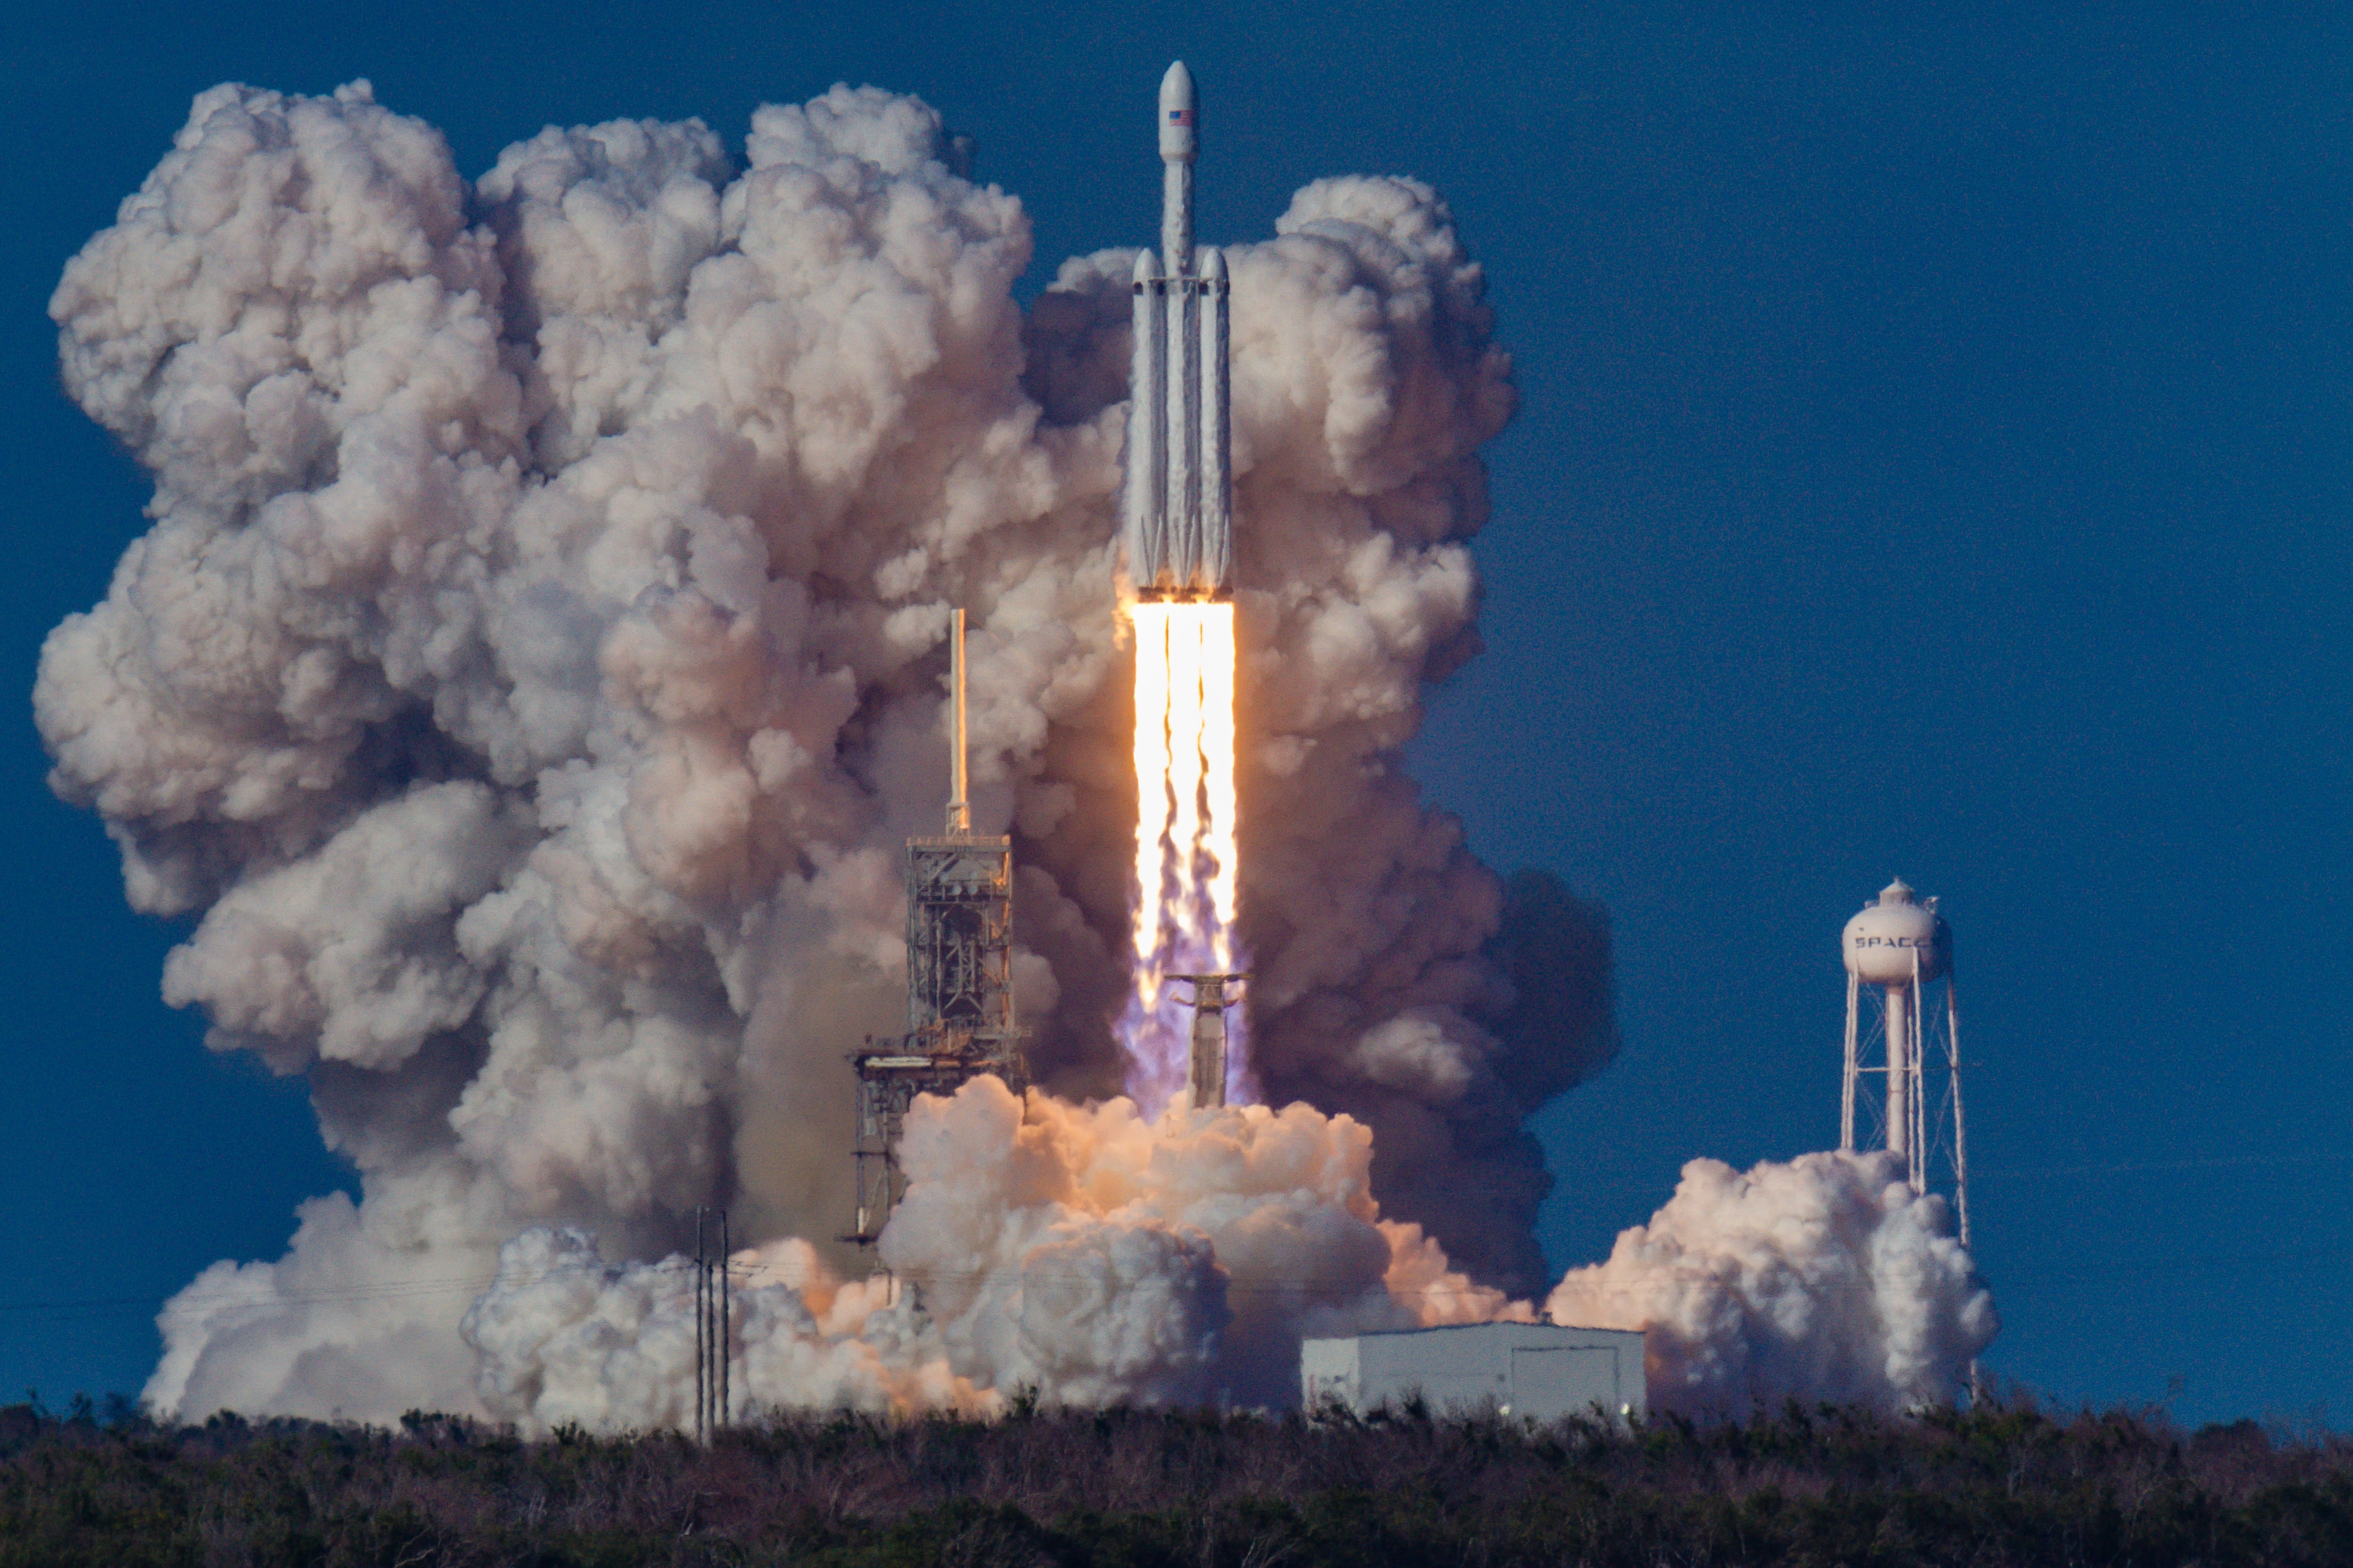 10 Exciting Space Missions and Launches Left to Watch in 2020